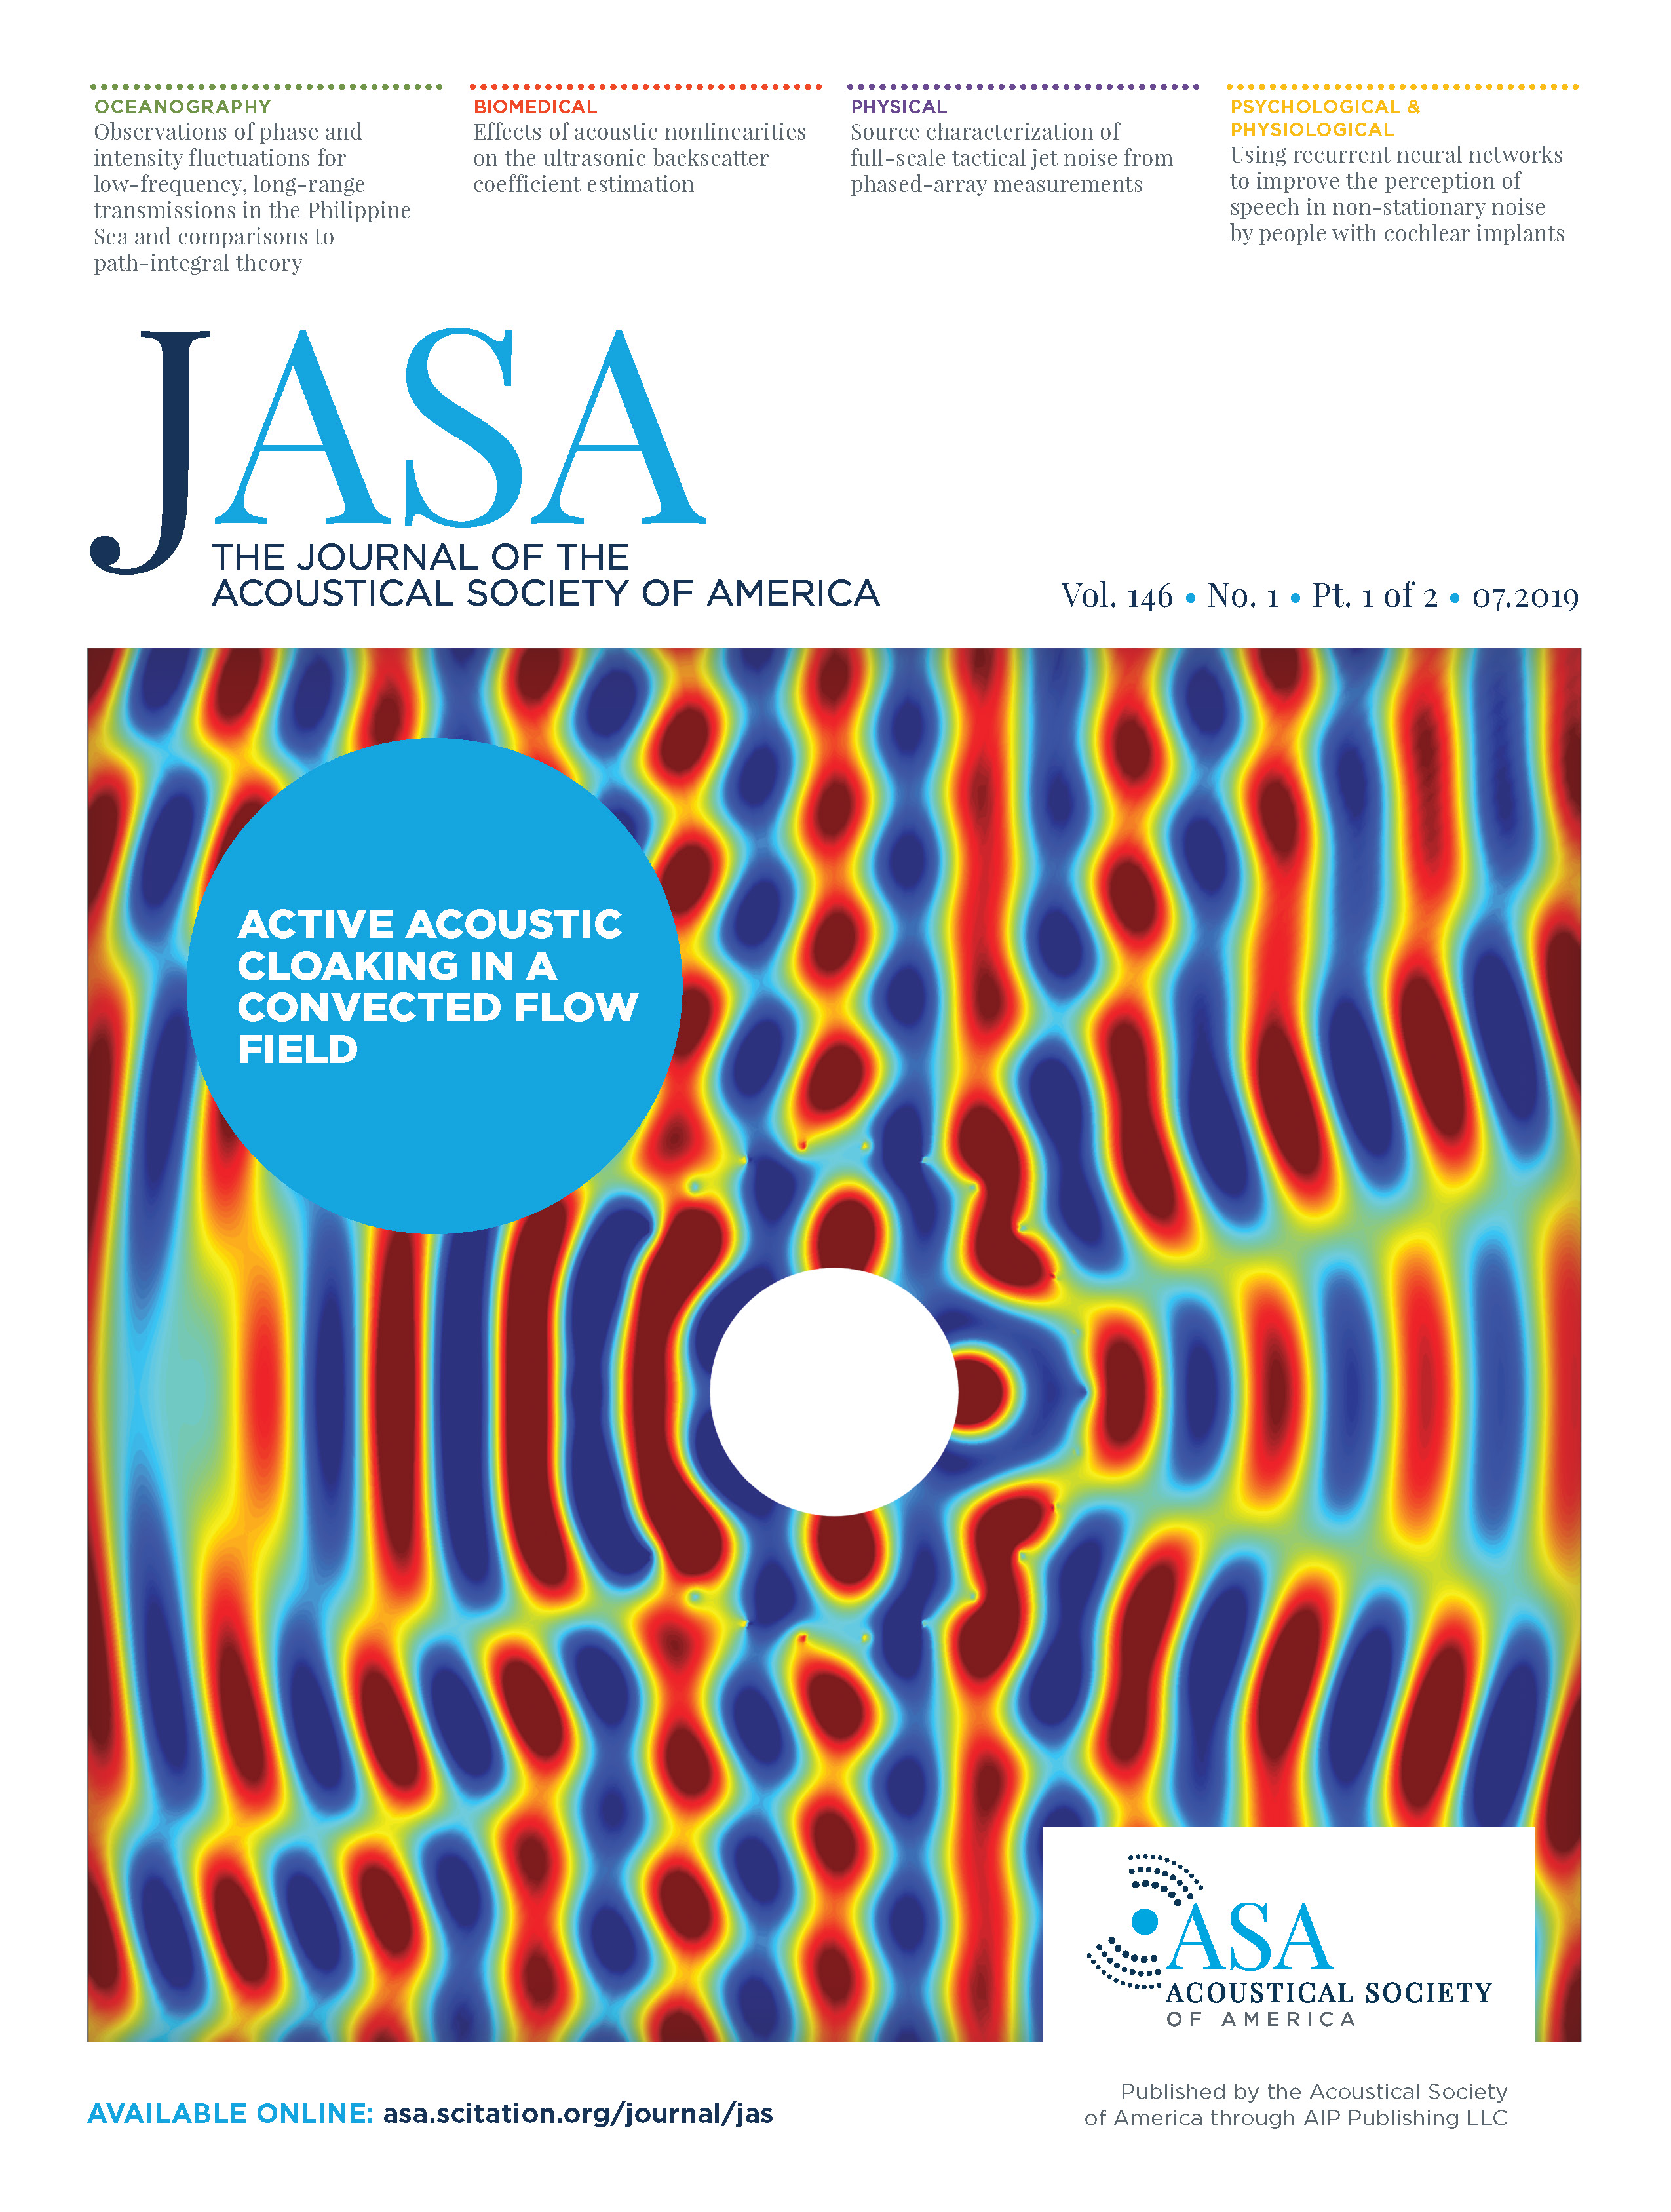 ACOUSTICAL STANDARDS NEWS: The Journal of the Acoustical